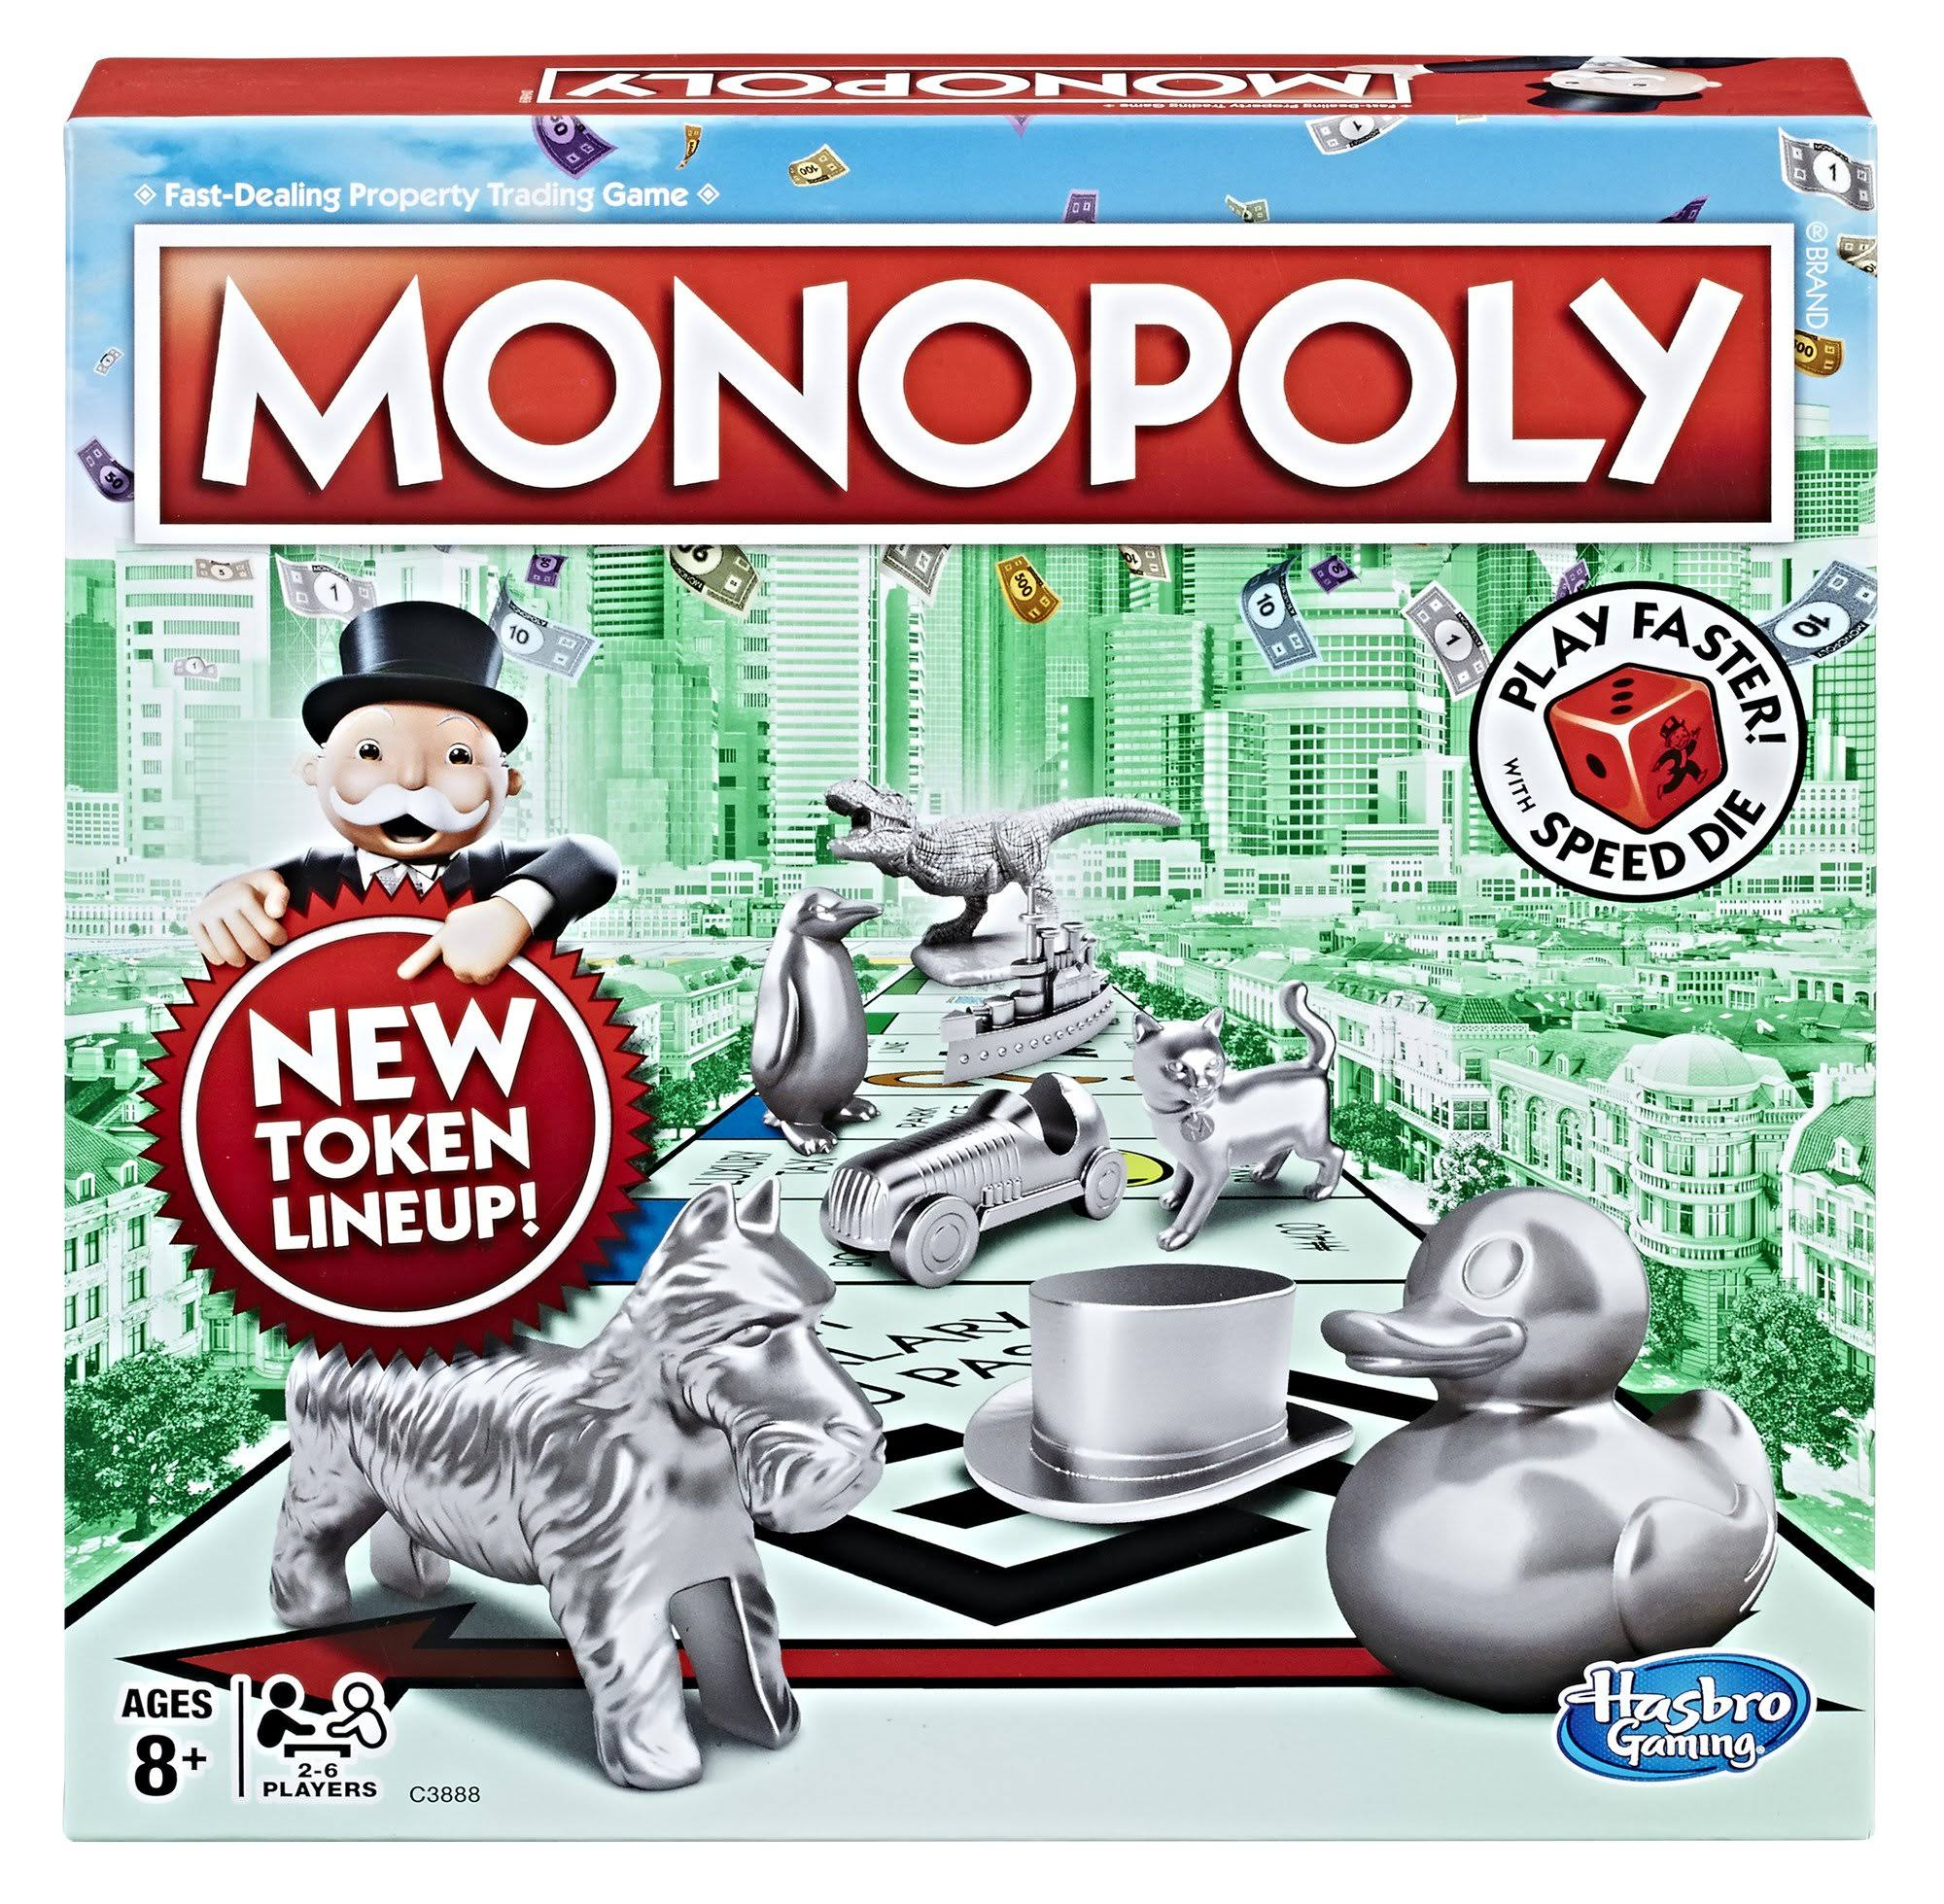 Hasbro Monopoly Speed Die Edition Board Games Set